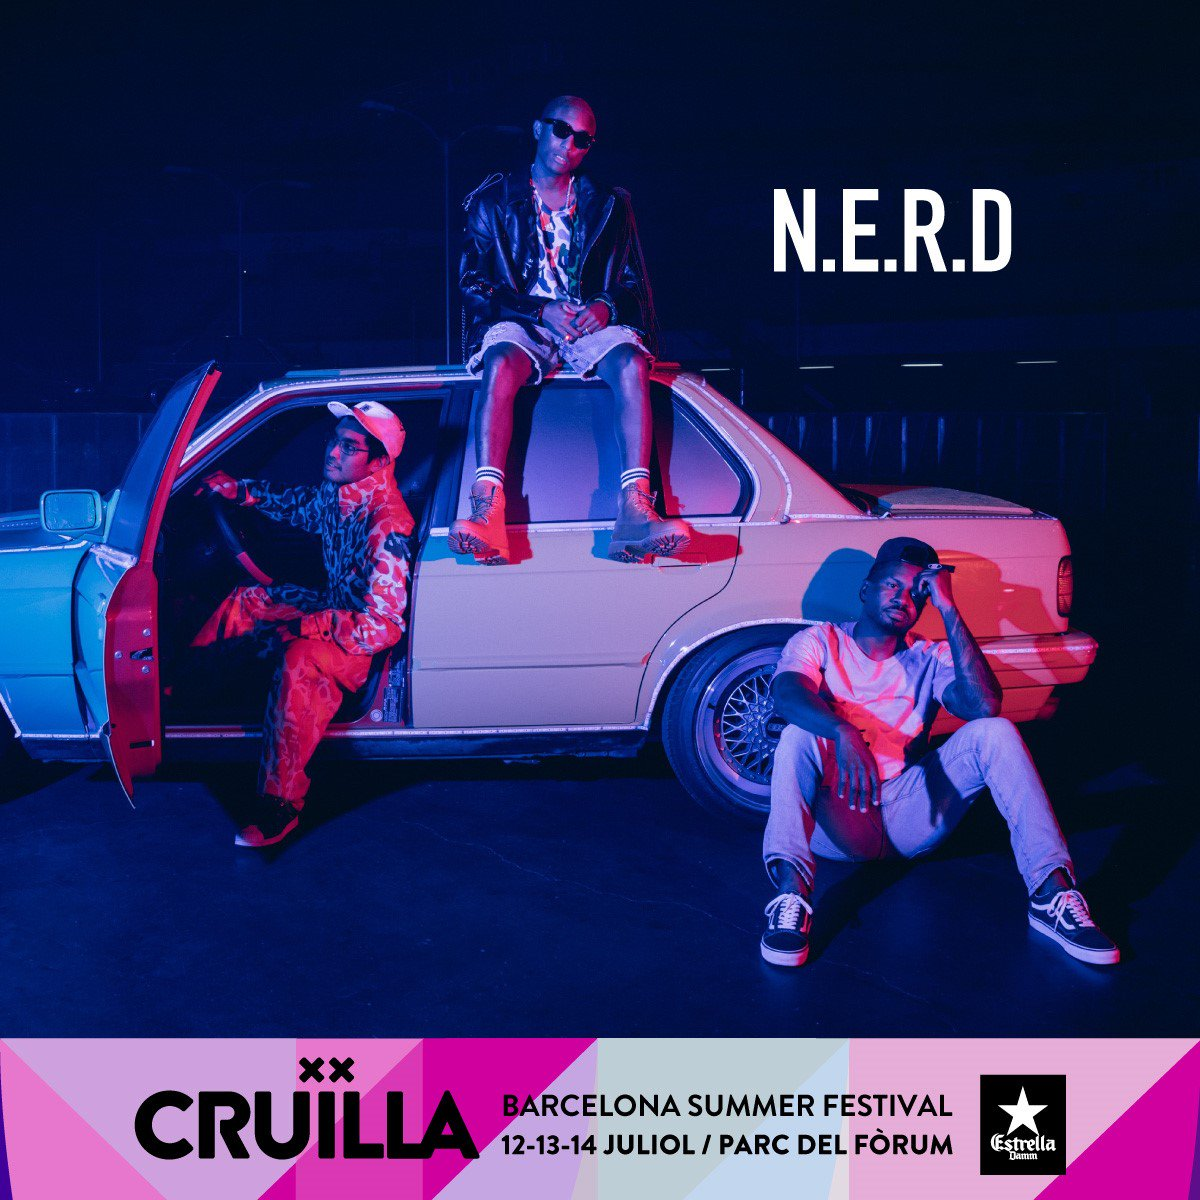 I'll be performing with @NERDarmy at @cruillabcn this July! ????????https://t.co/OpZ2gqUY2a #NoOneEverReallyDies https://t.co/6RuhtjlnNz